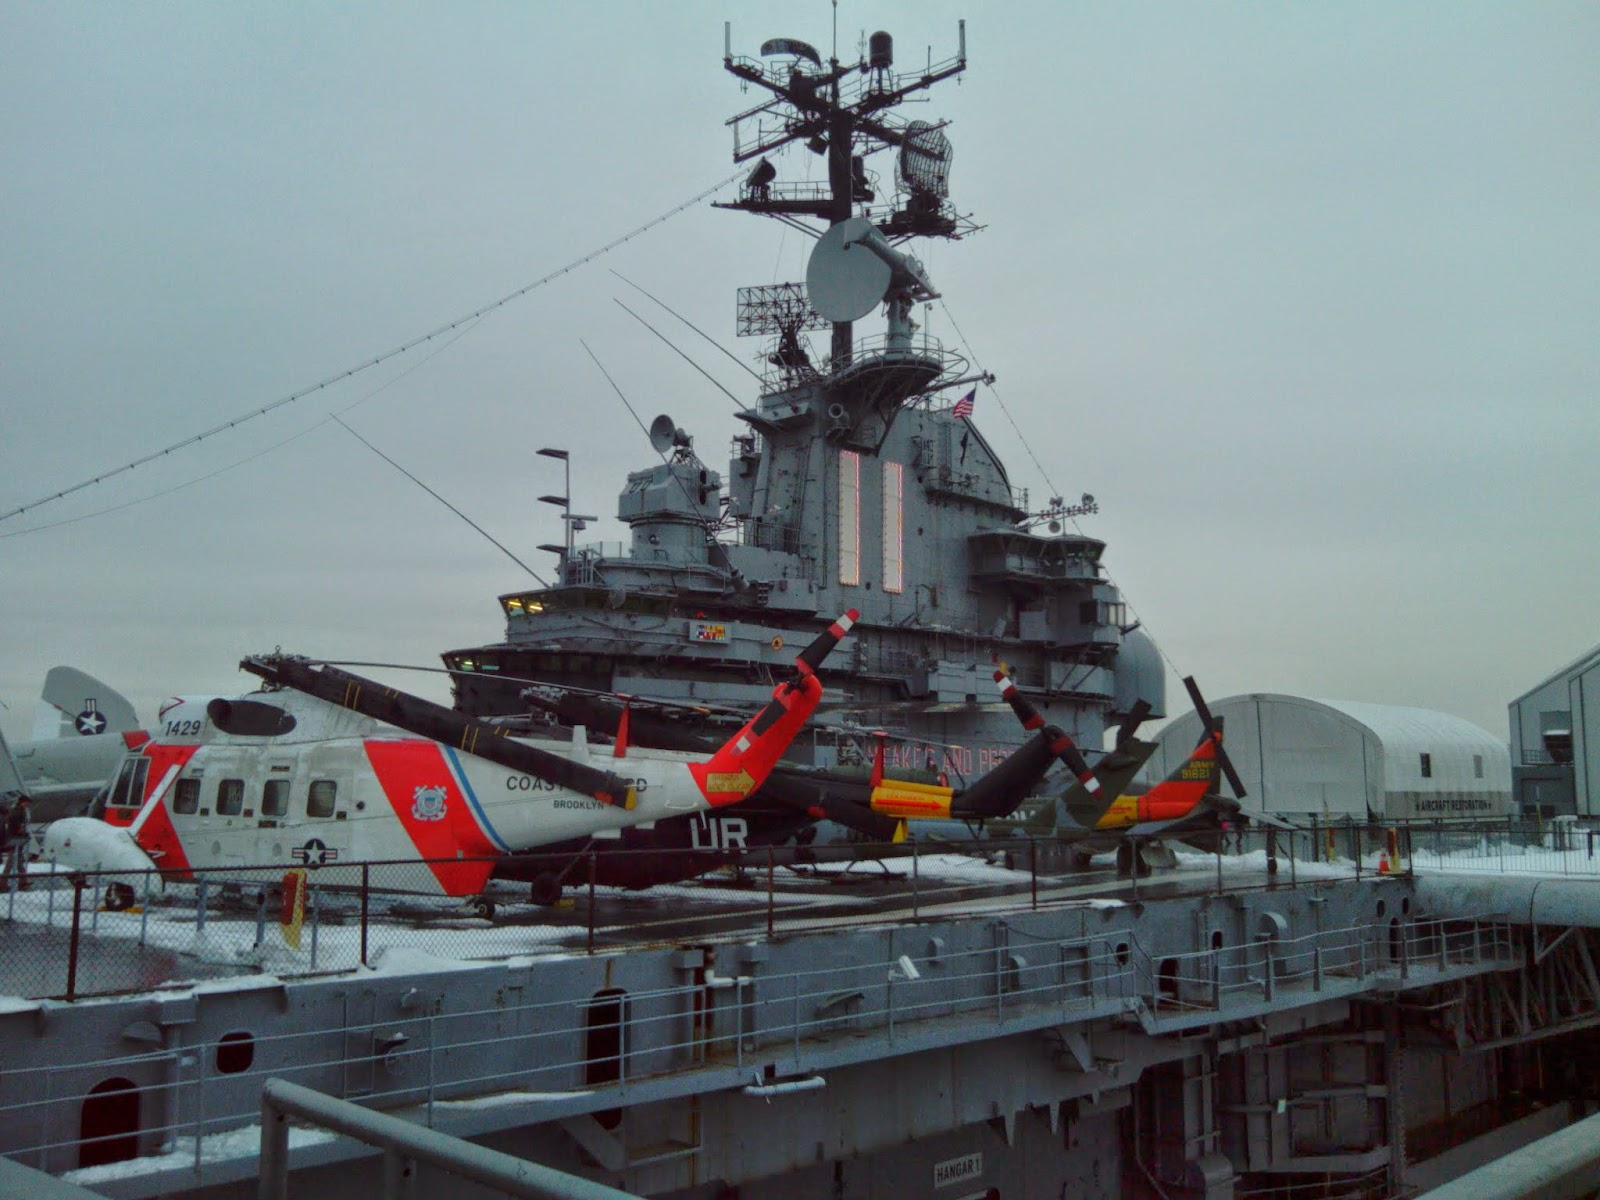 Vivere la storia the intrepid sea air space museum - Portaerei new york ...